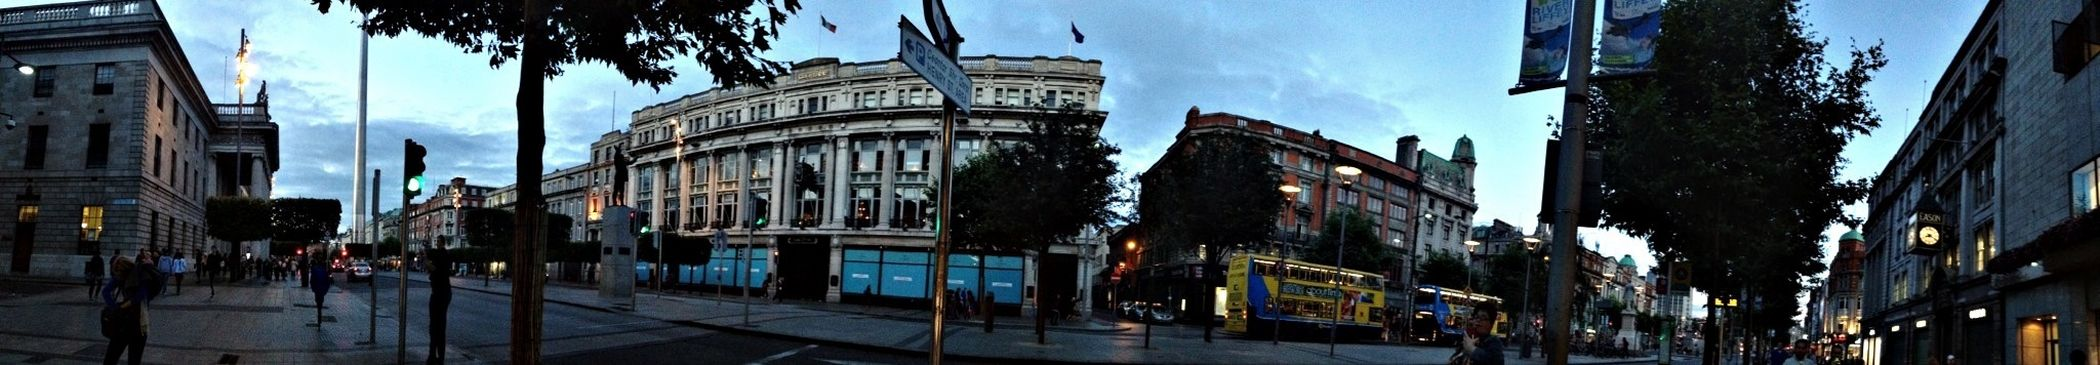 Panoramic Of O'Connell Street, Dublin at dusk. [02.09.13] Detailsofmylife